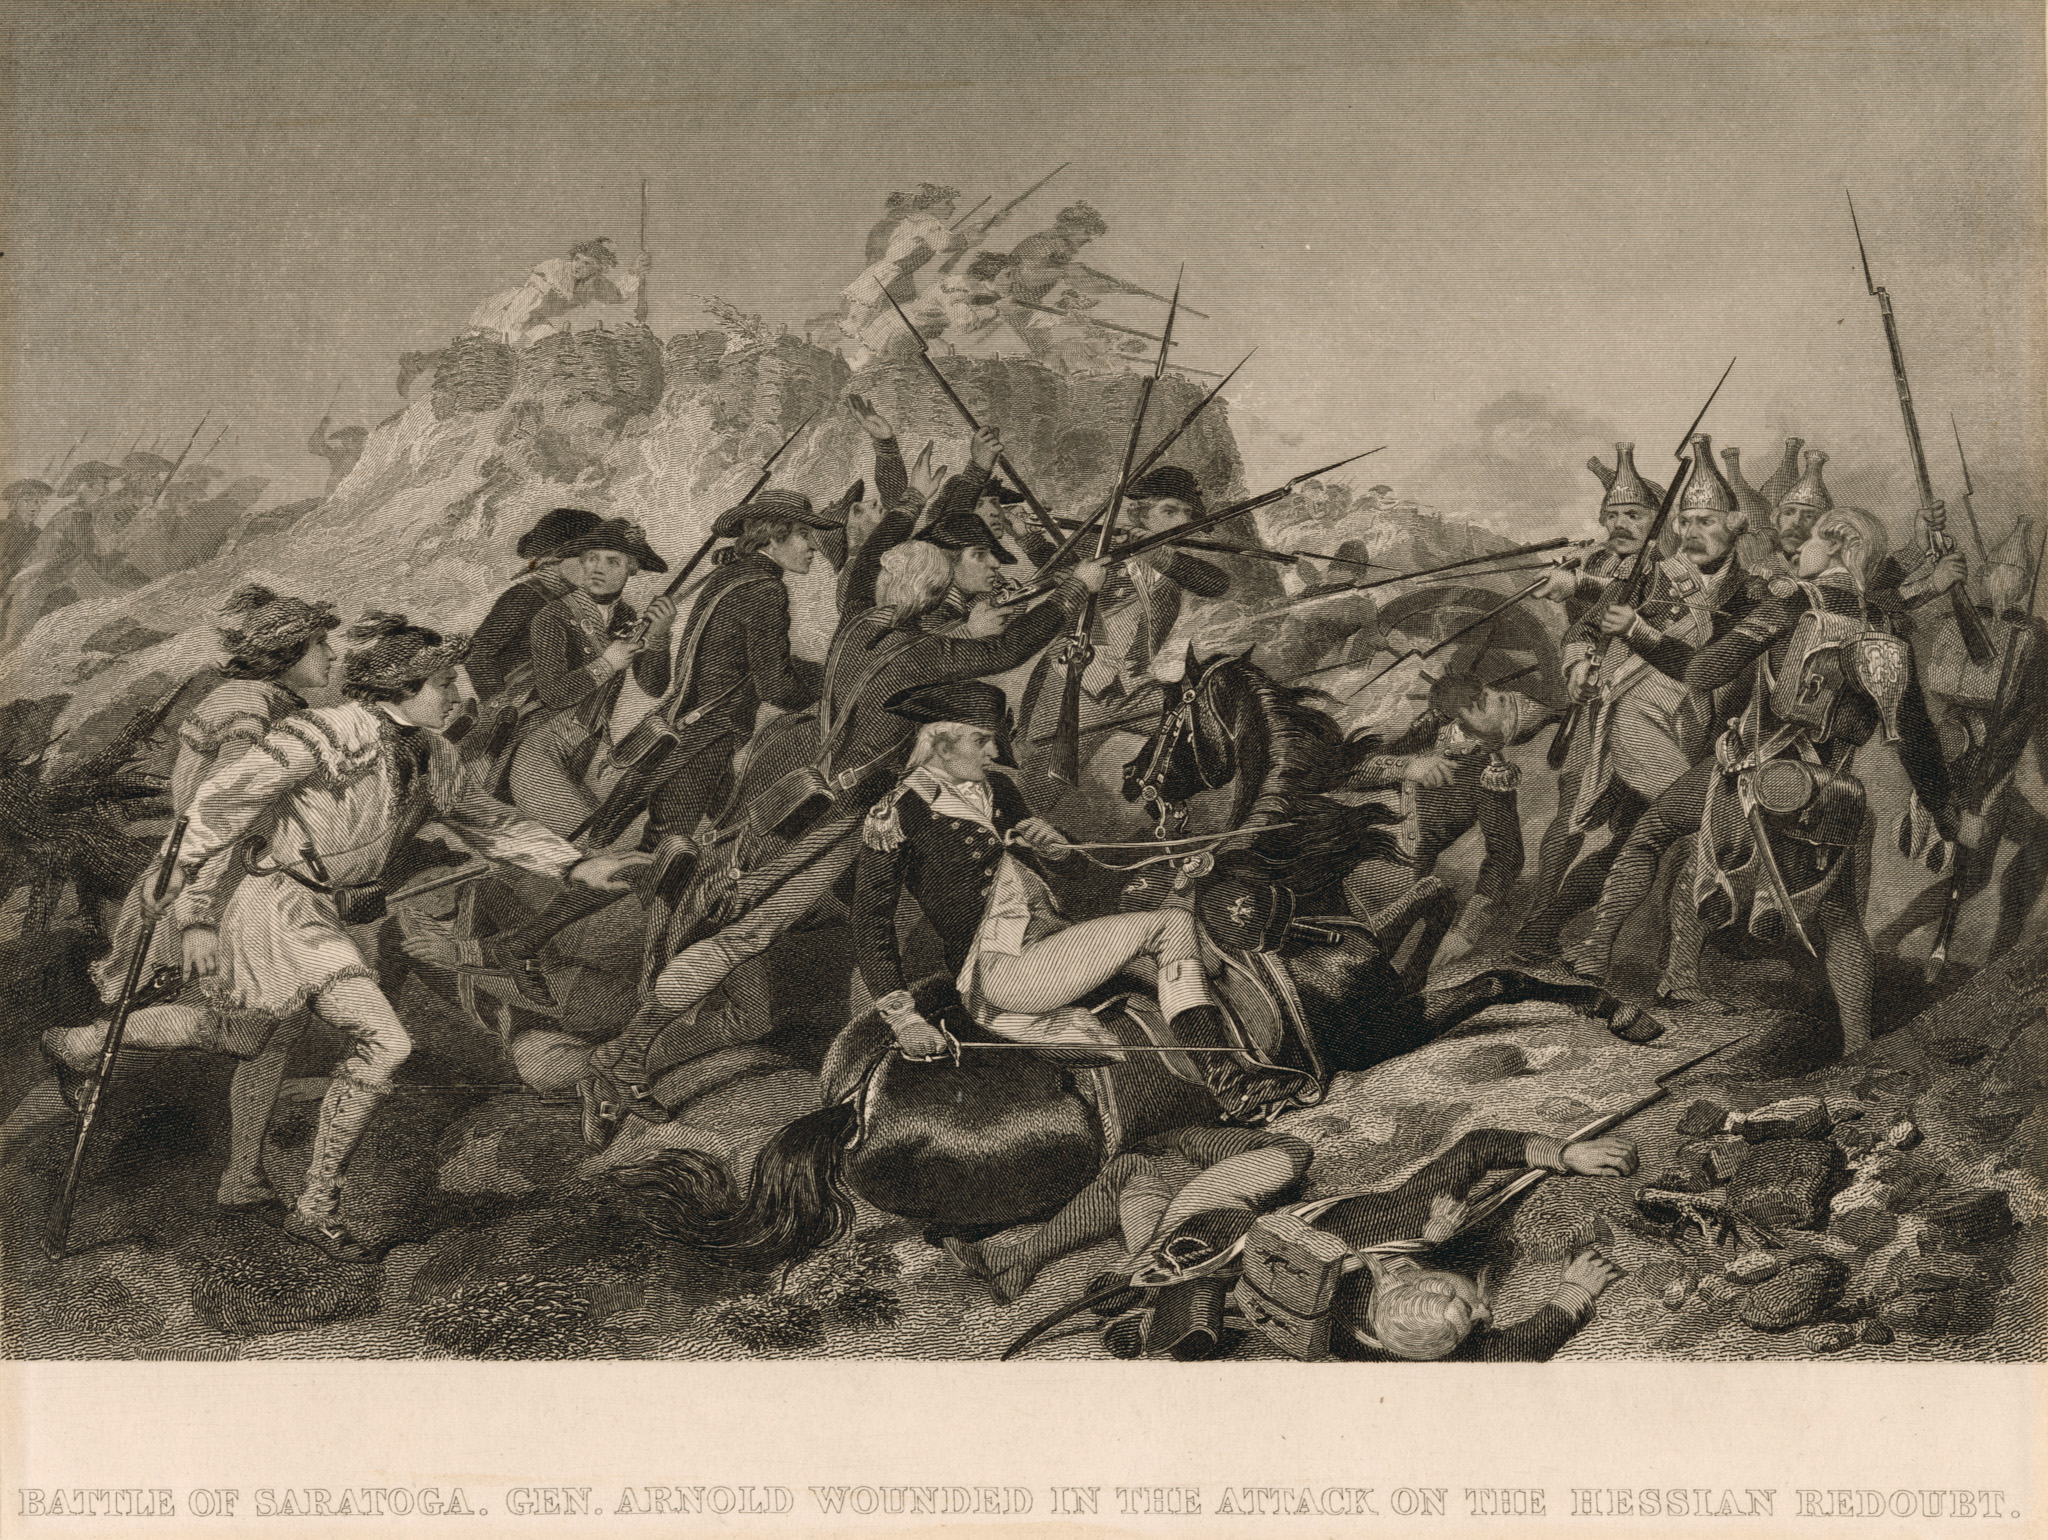 General Arnold wounded in Battle of Saratoga